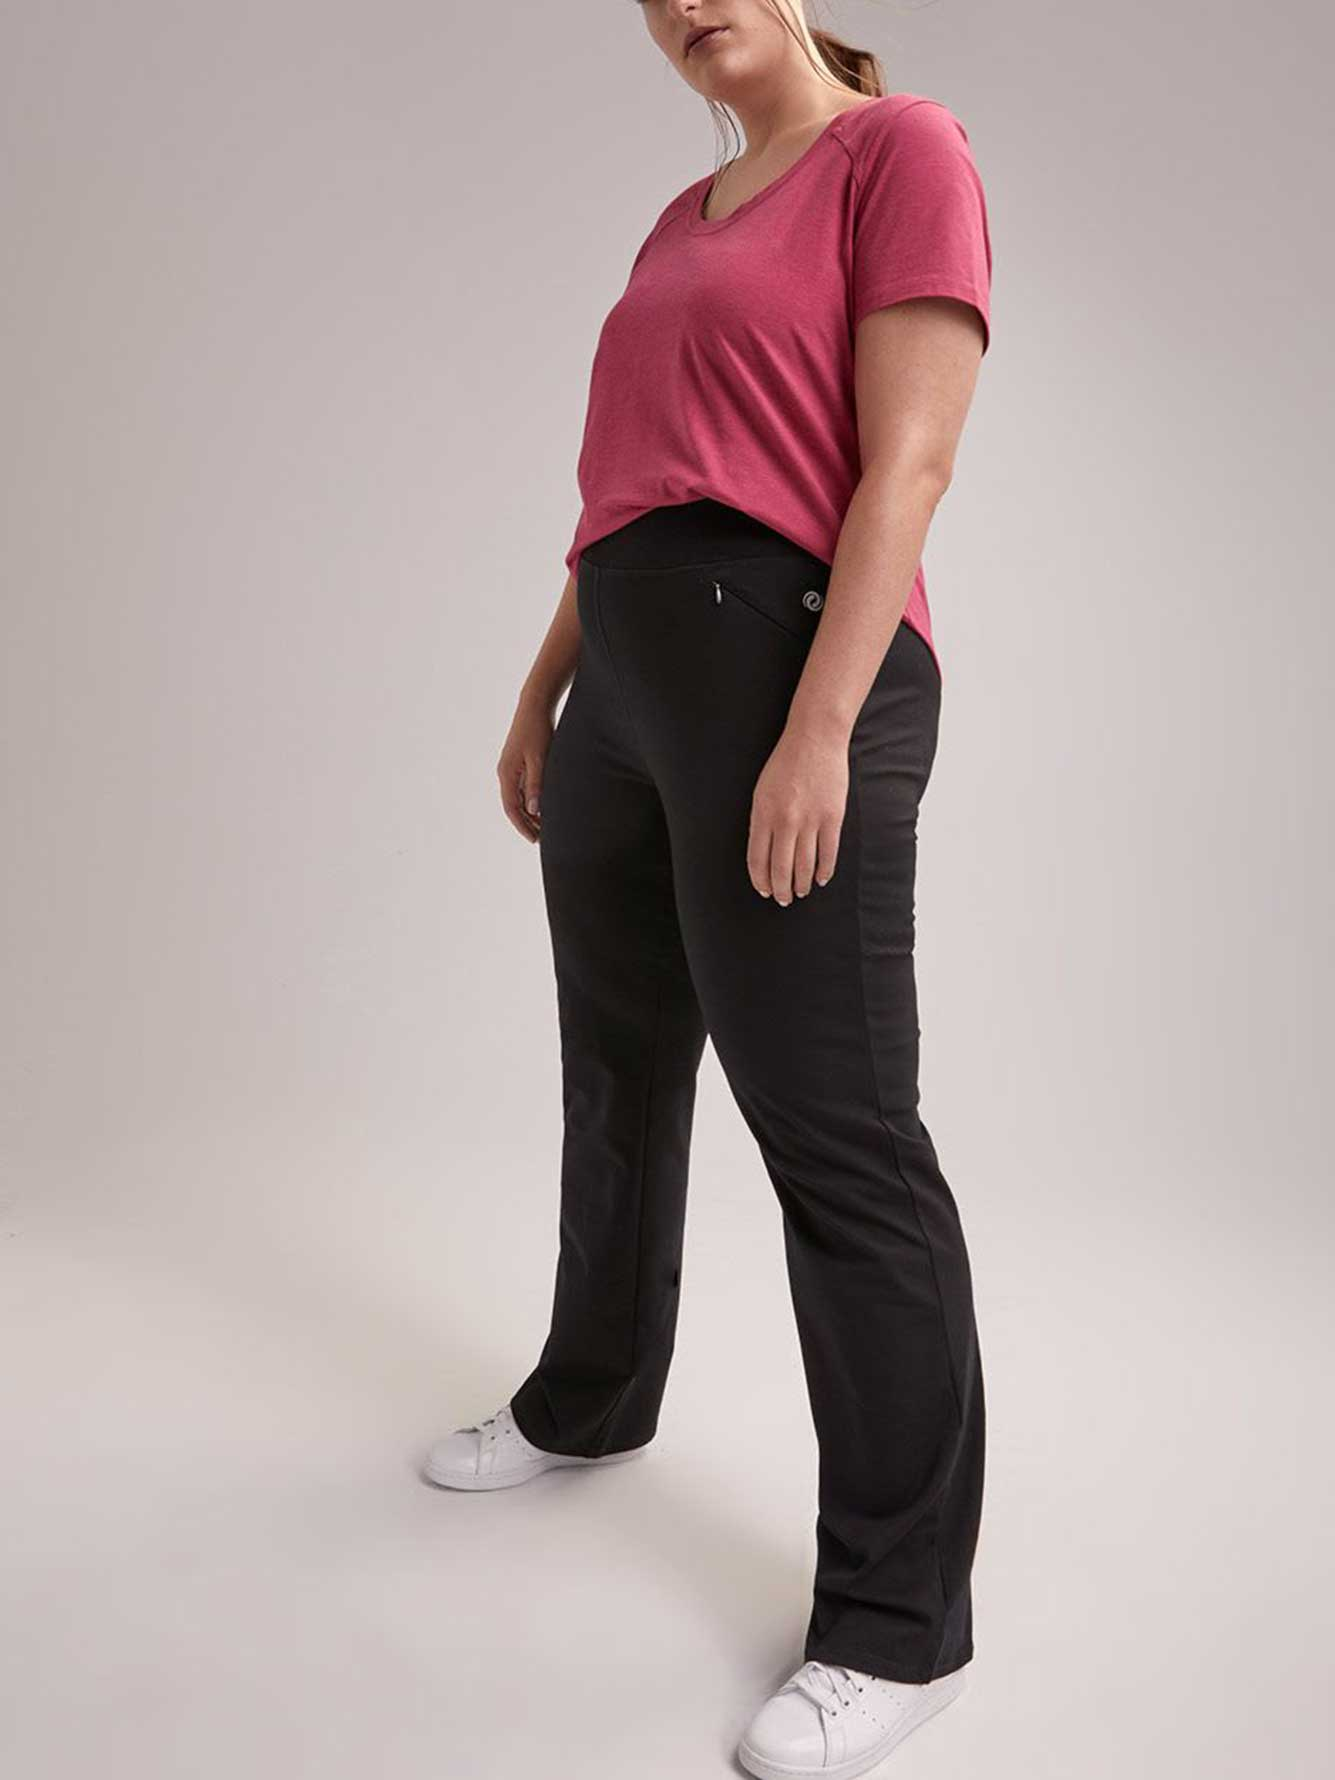 088cbf7c4ae2d ONLINE ONLY - Tall Plus-Size Basic Relaxed Pant - ActiveZone ...